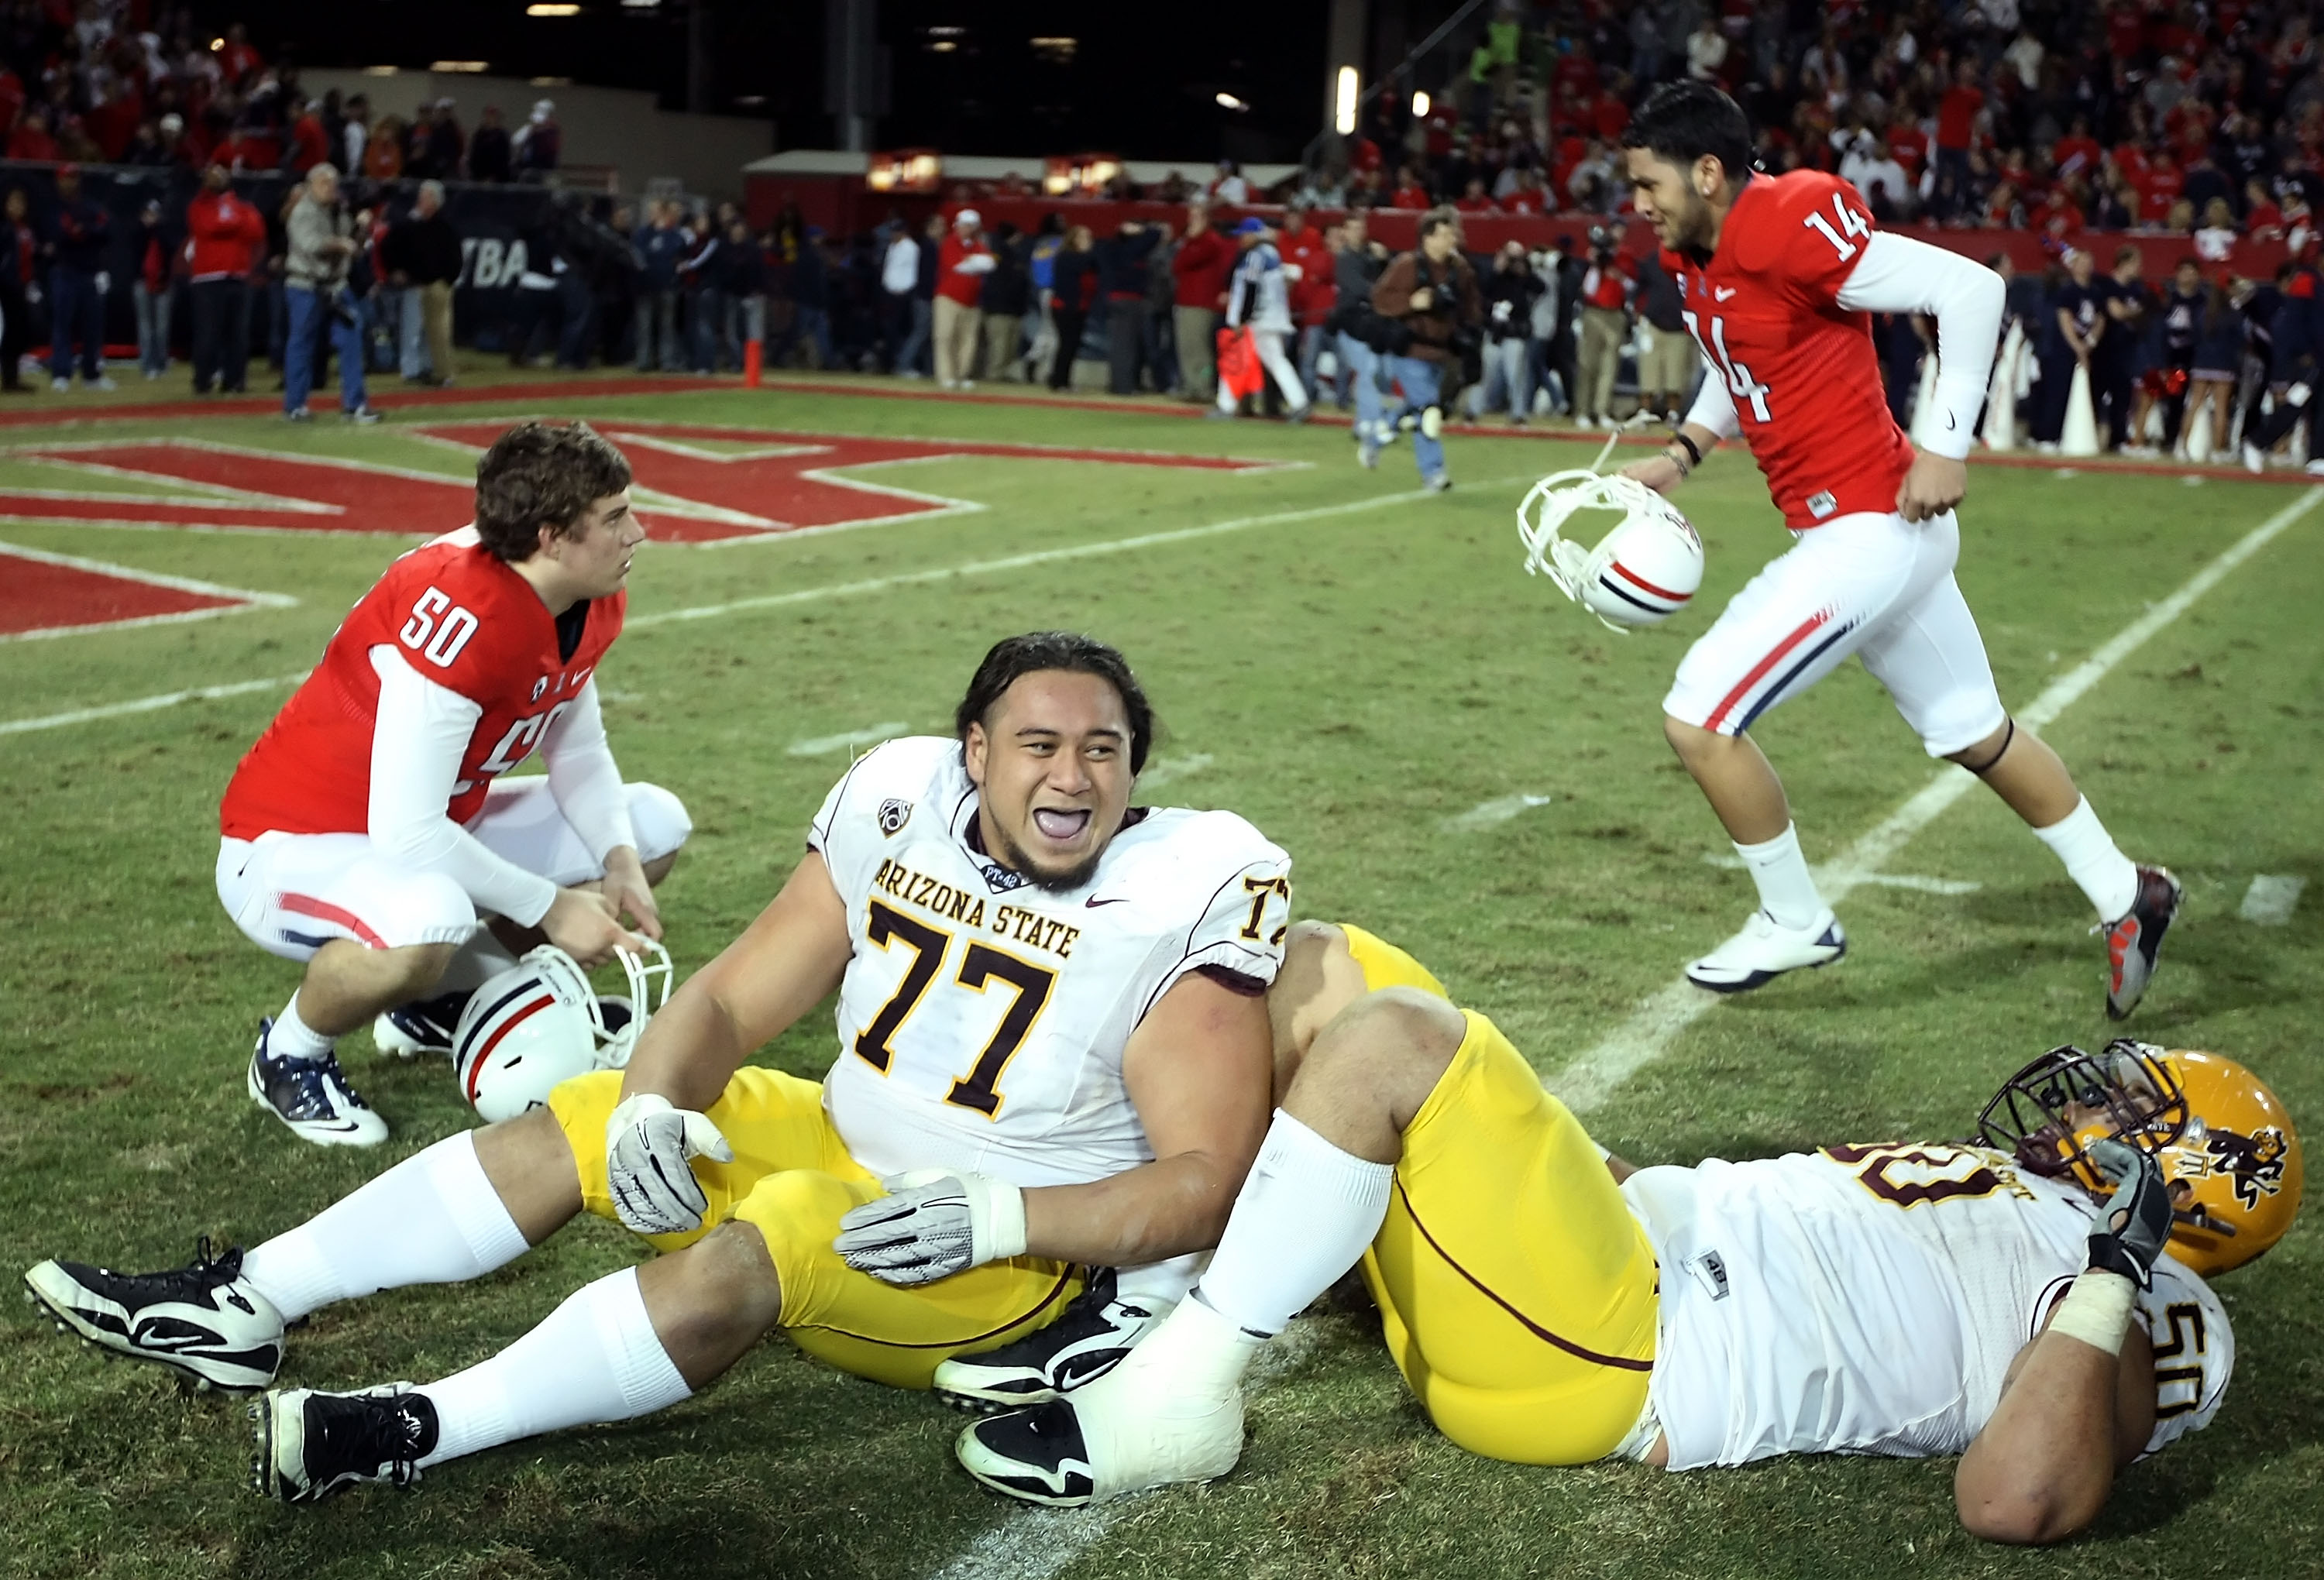 TUCSON, AZ - DECEMBER 02:  Defensive tackle Saia Falahola #77 and Lawrence Guy #50 of the Arizona State Sun Devils celebrate after defeating the Arizona Wildcats in college football game at Arizona Stadium on December 2, 2010 in Tucson, Arizona. The Sun D